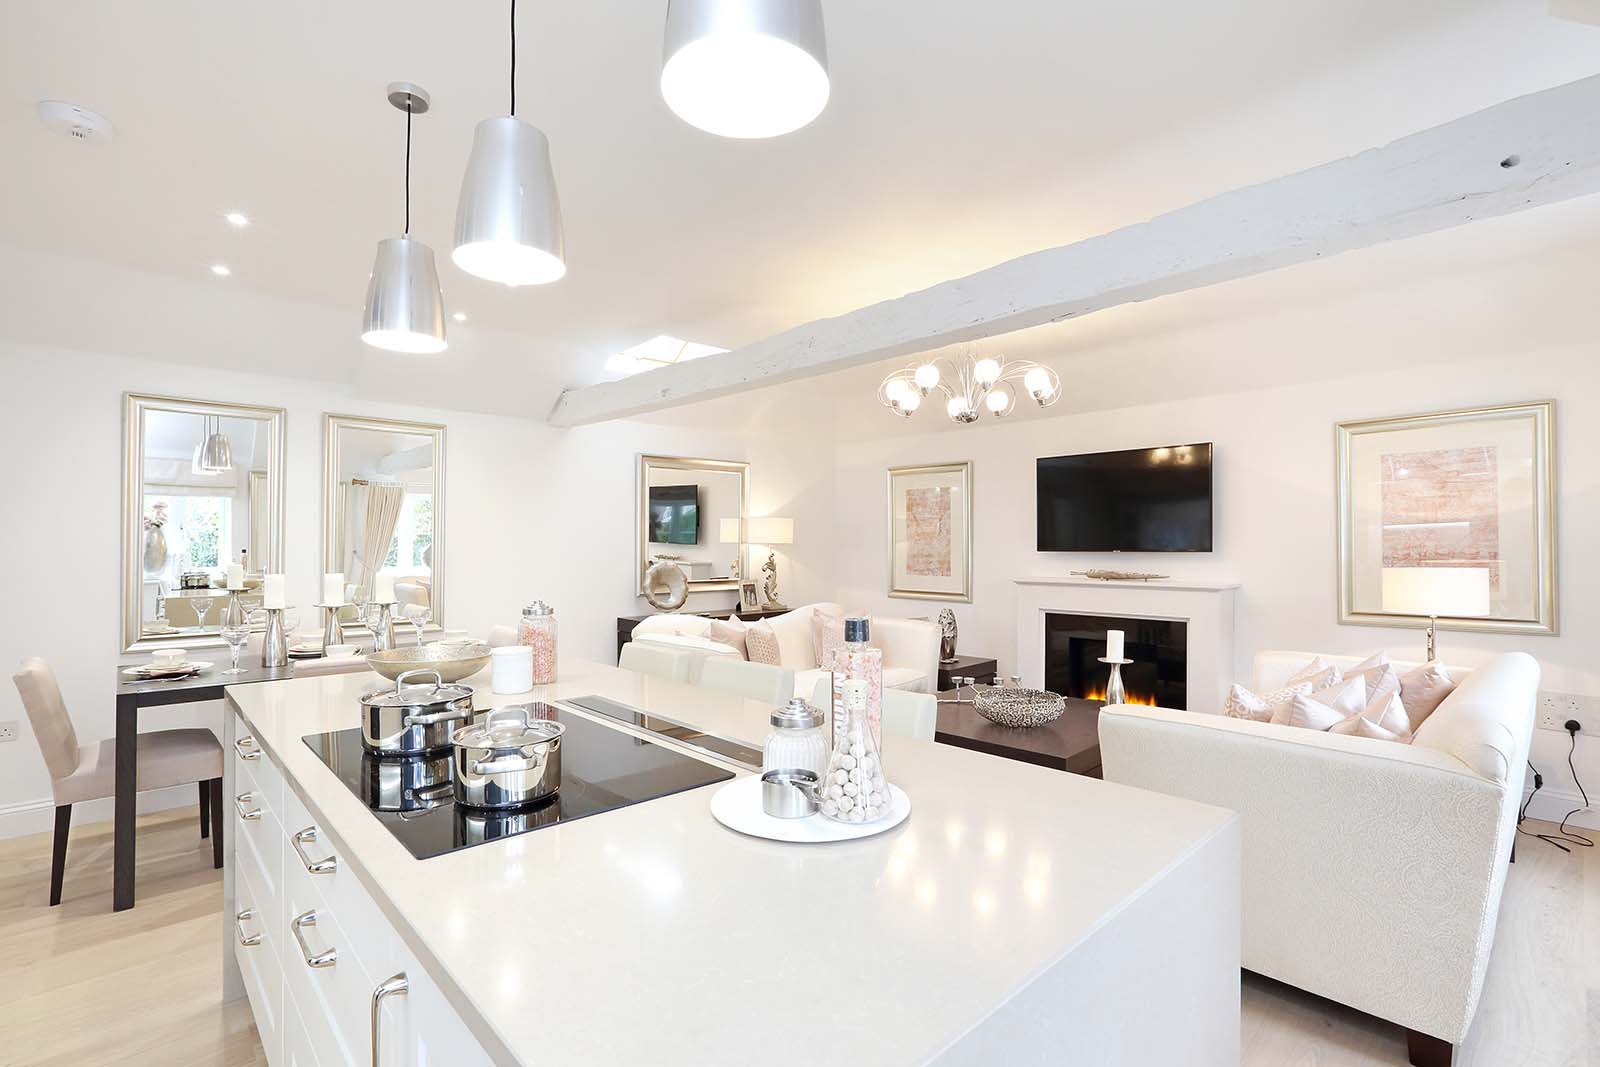 HAM COMMON LISTED BUILDING CONVERSION